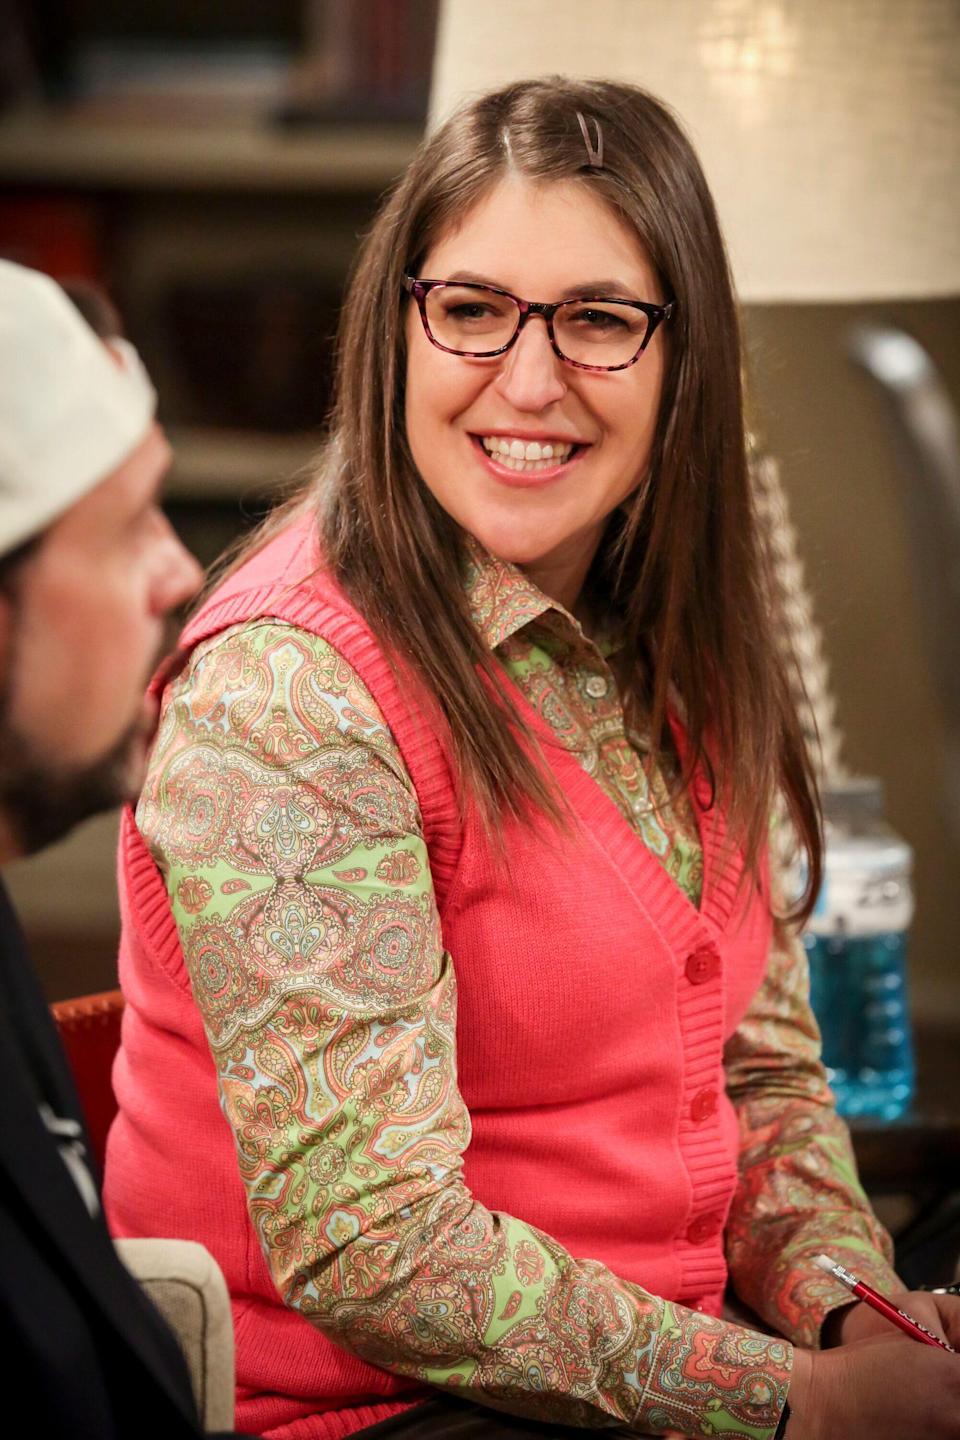 """LOS ANGELES - FEBRUARY 4: """"The D & D Vortex"""" -- Pictured: Amy Farrah Fowler (Mayim Bialik). When the gang finds out Wil Wheaton hosts a celebrity Dungeons and Dragons game involving William Shatner, Joe Manganiello, Kareem Abdul-Jabbar and Kevin Smith, deception and betrayal are the path to make it to the one open seat, on THE BIG BANG THEORY, Thursday, Feb. 21 (8:00-8:31 PM, ET/PT) on the CBS Television Network. (Photo by Michael Yarish/CBS via Getty Images)"""